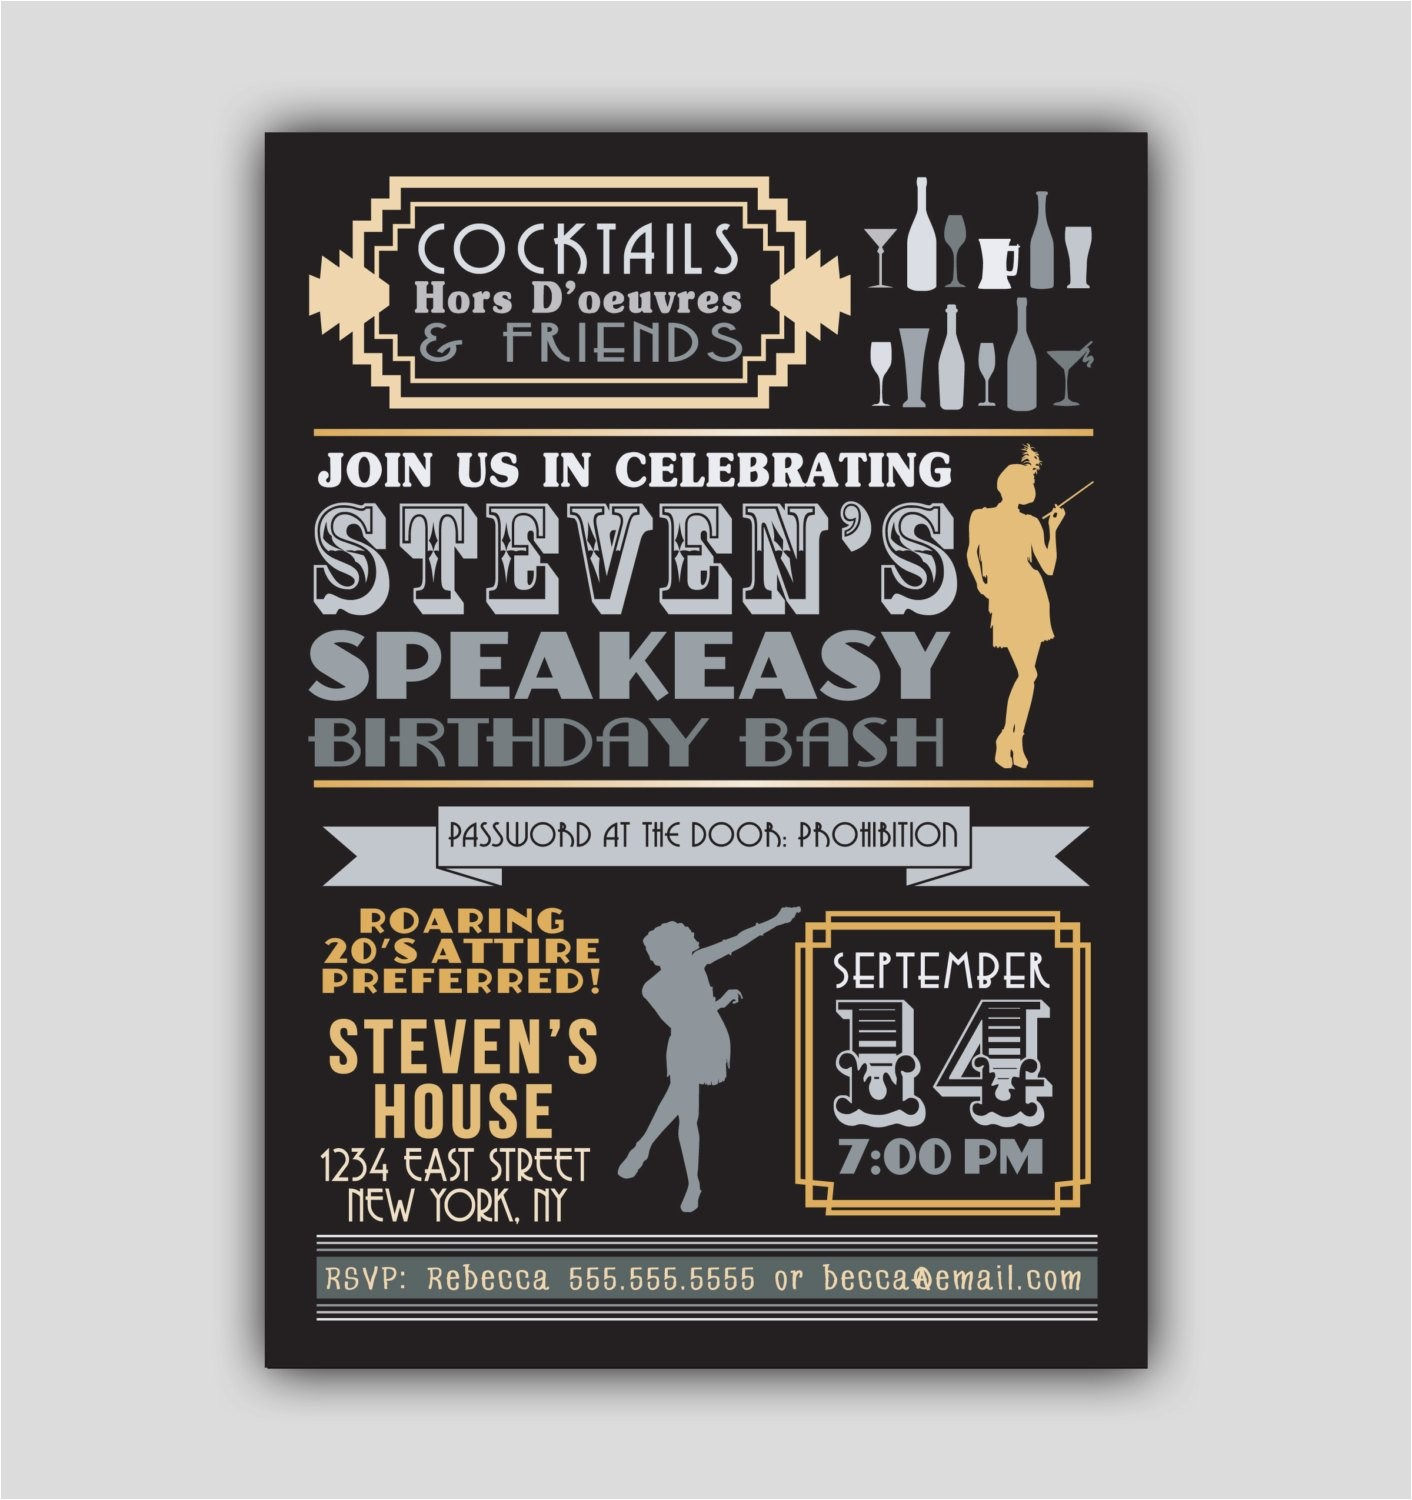 speakeasy prohibition 1920s art deco